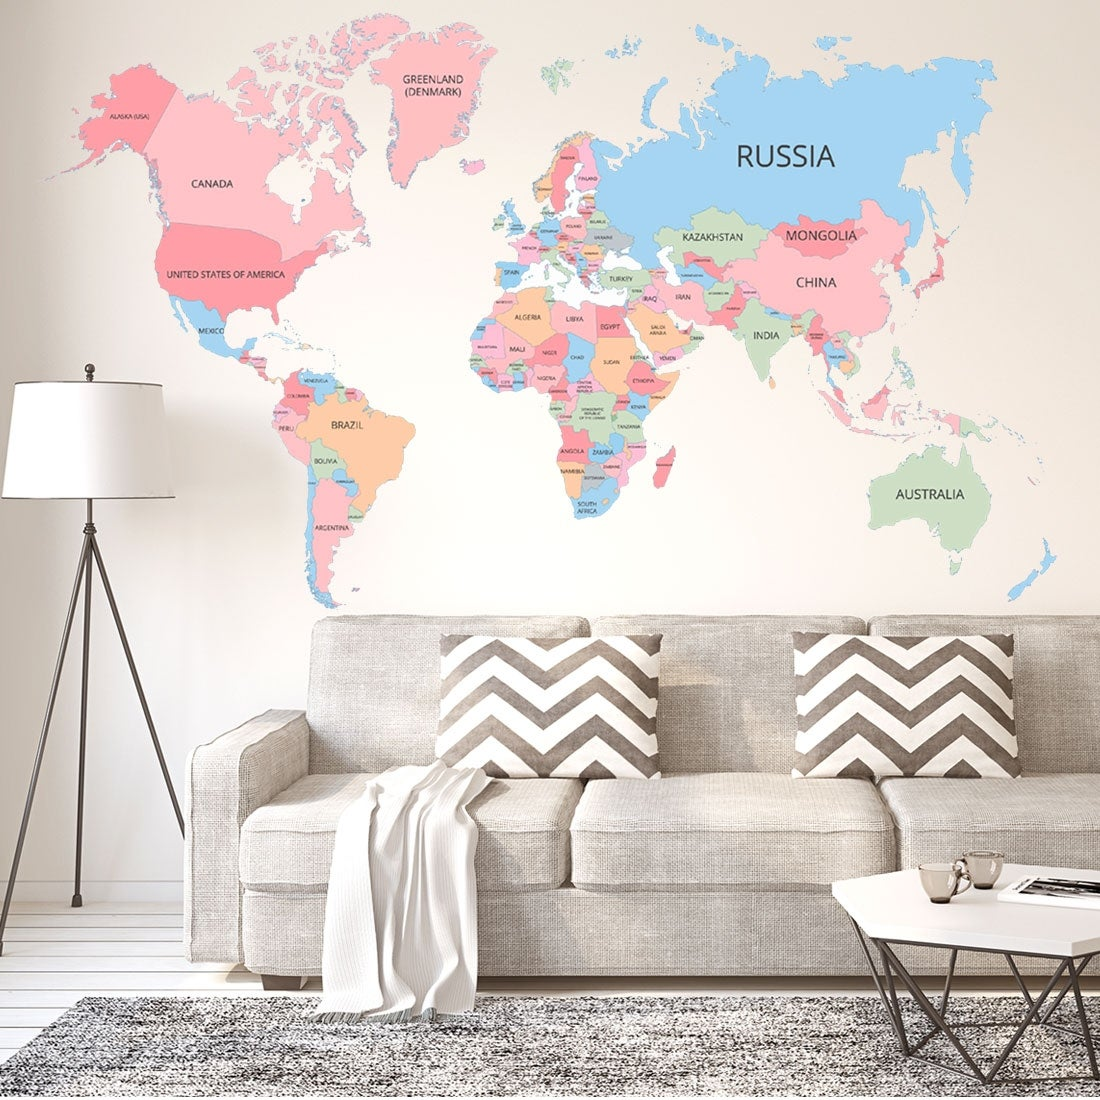 World Map Wall Stickers Removable Diy Paper Decal For Bedroom Living Room